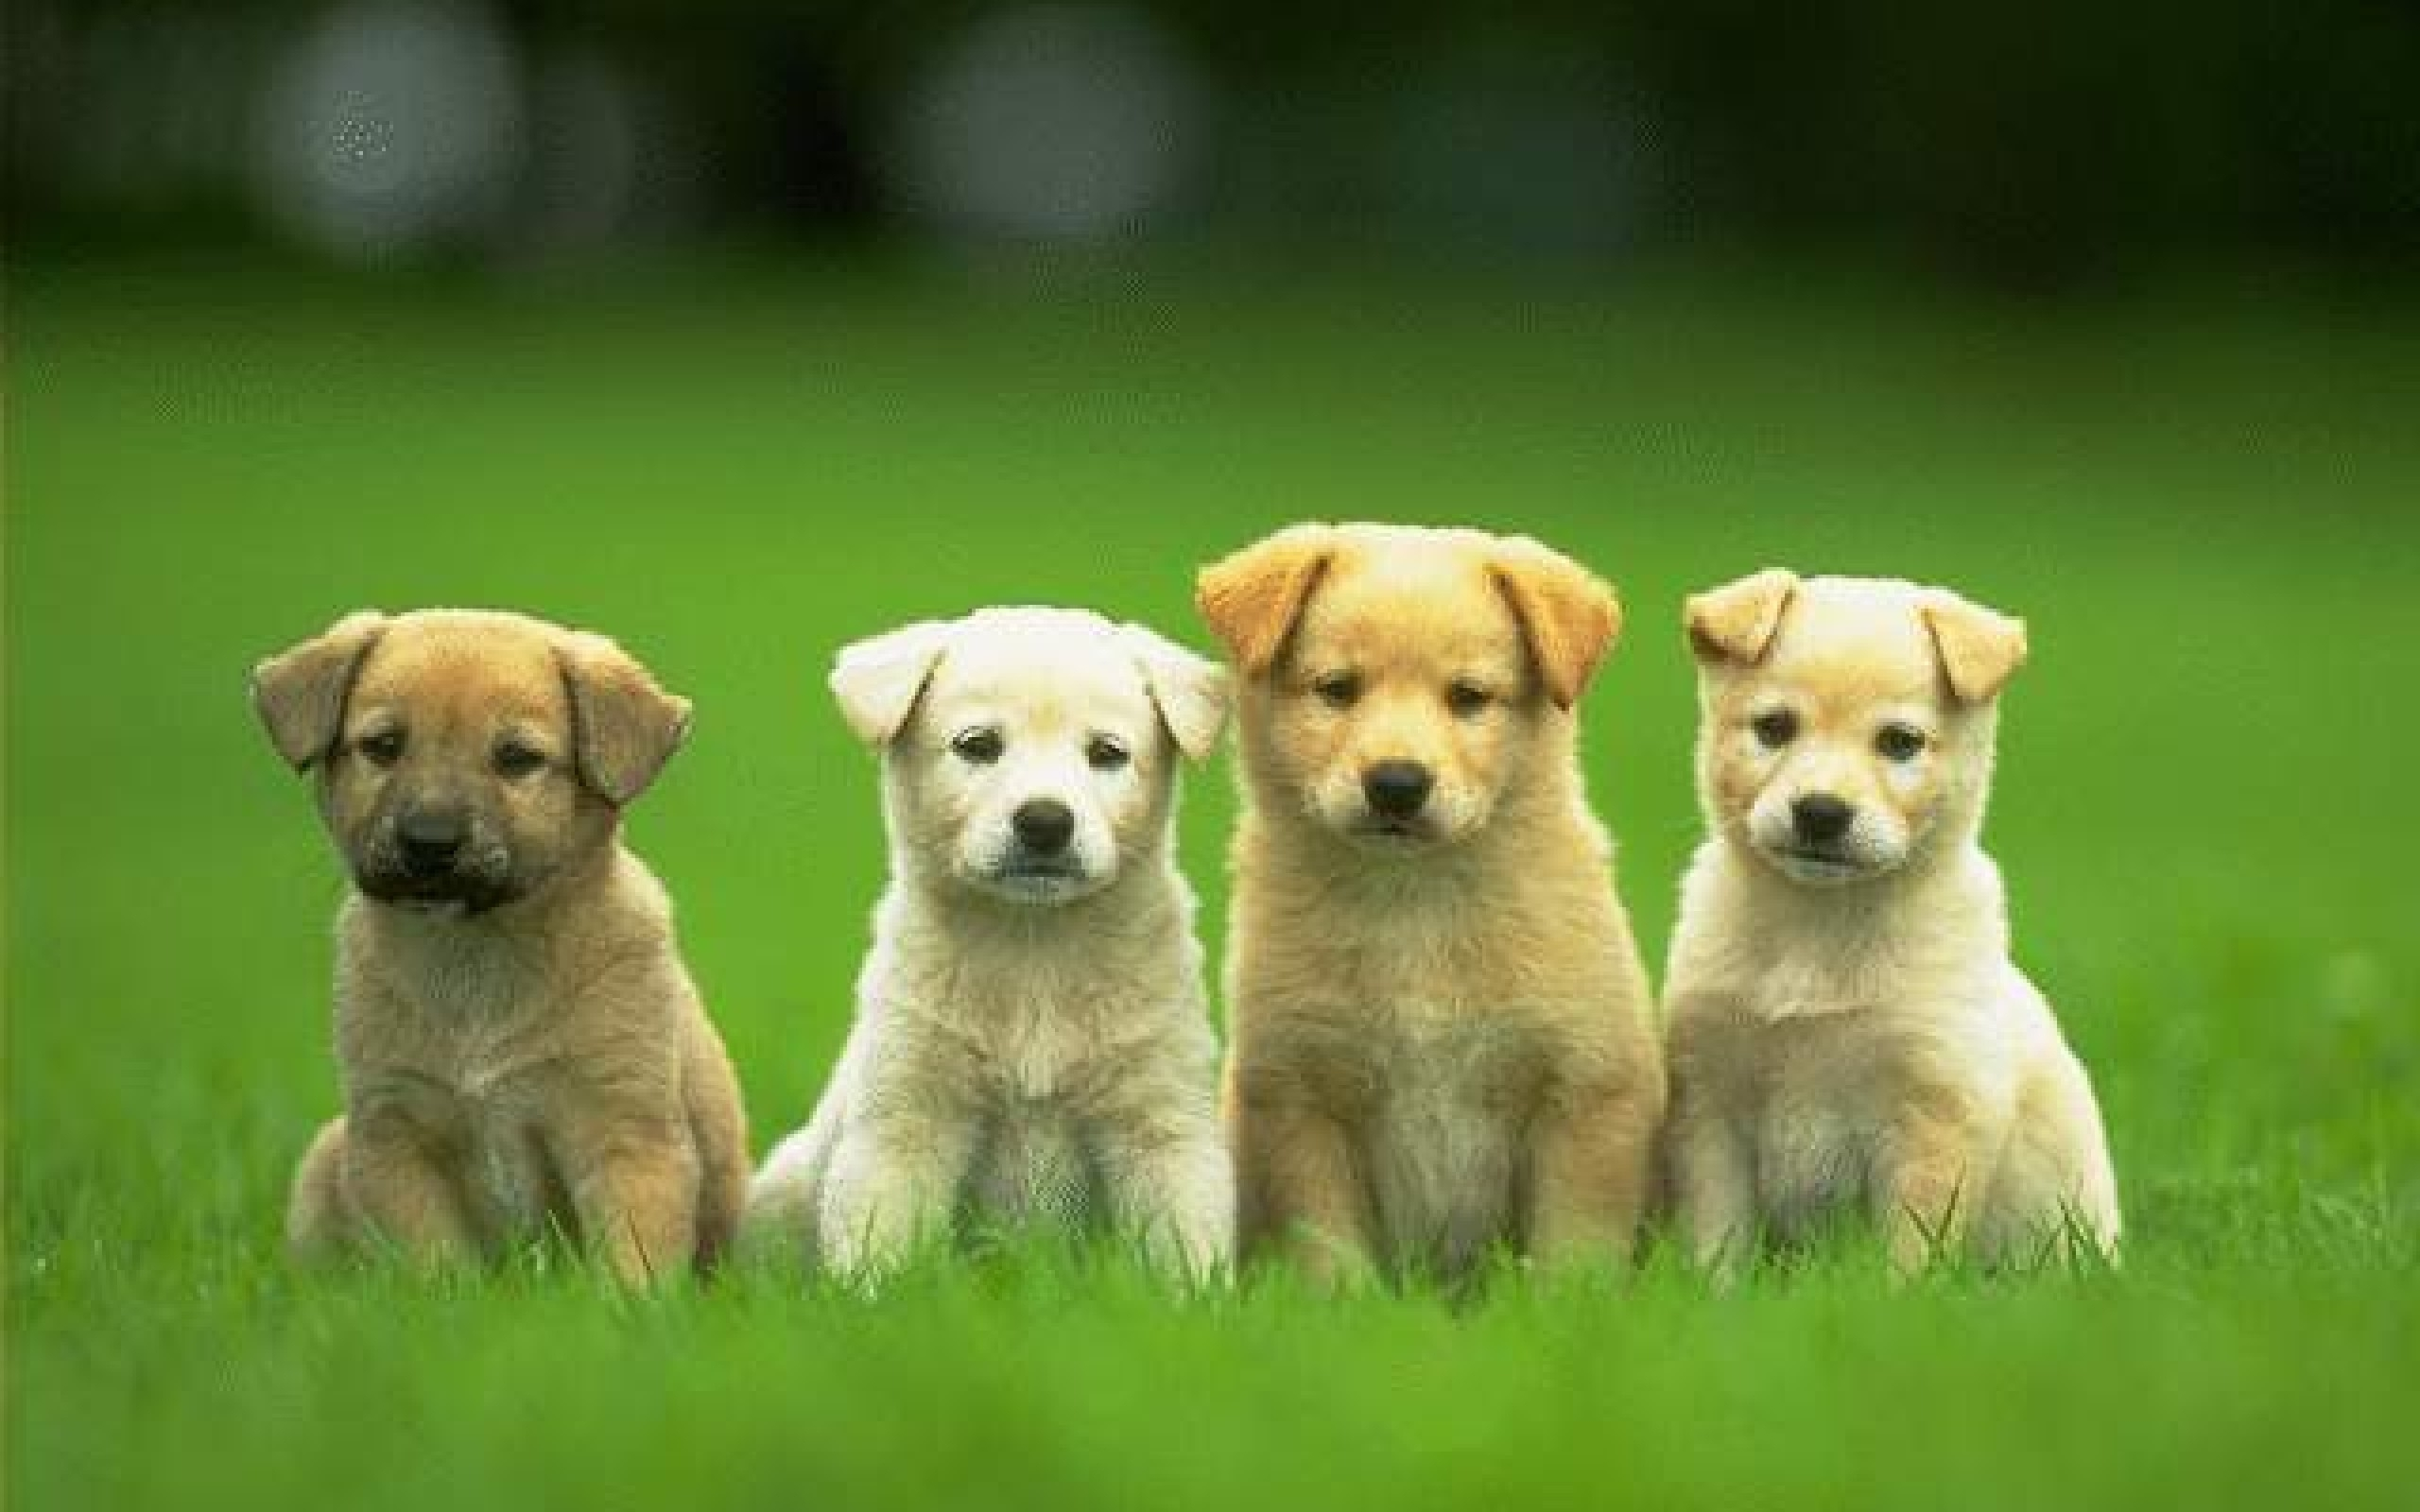 four cute puppy dog wallpaper HD Wallpaper Backgrounds Tumblr 2560x1600